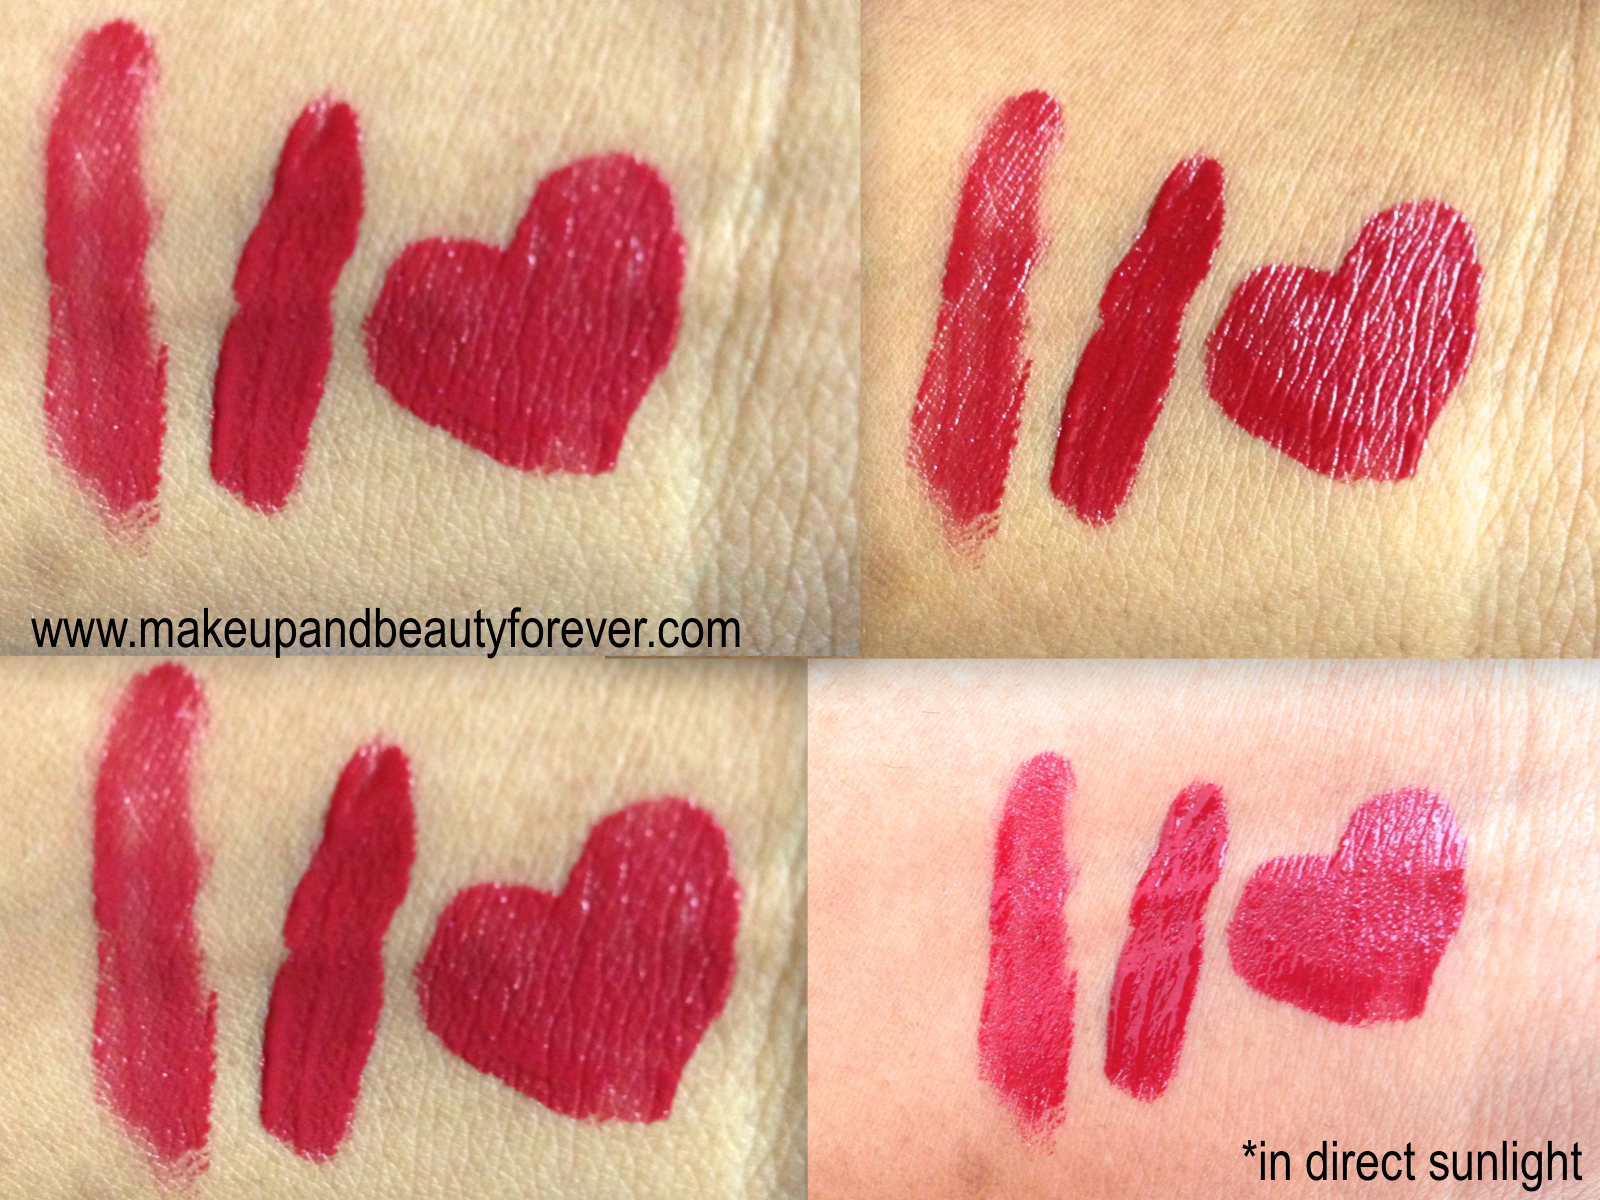 Lacquer Rouge Lipstick by Shiseido #21